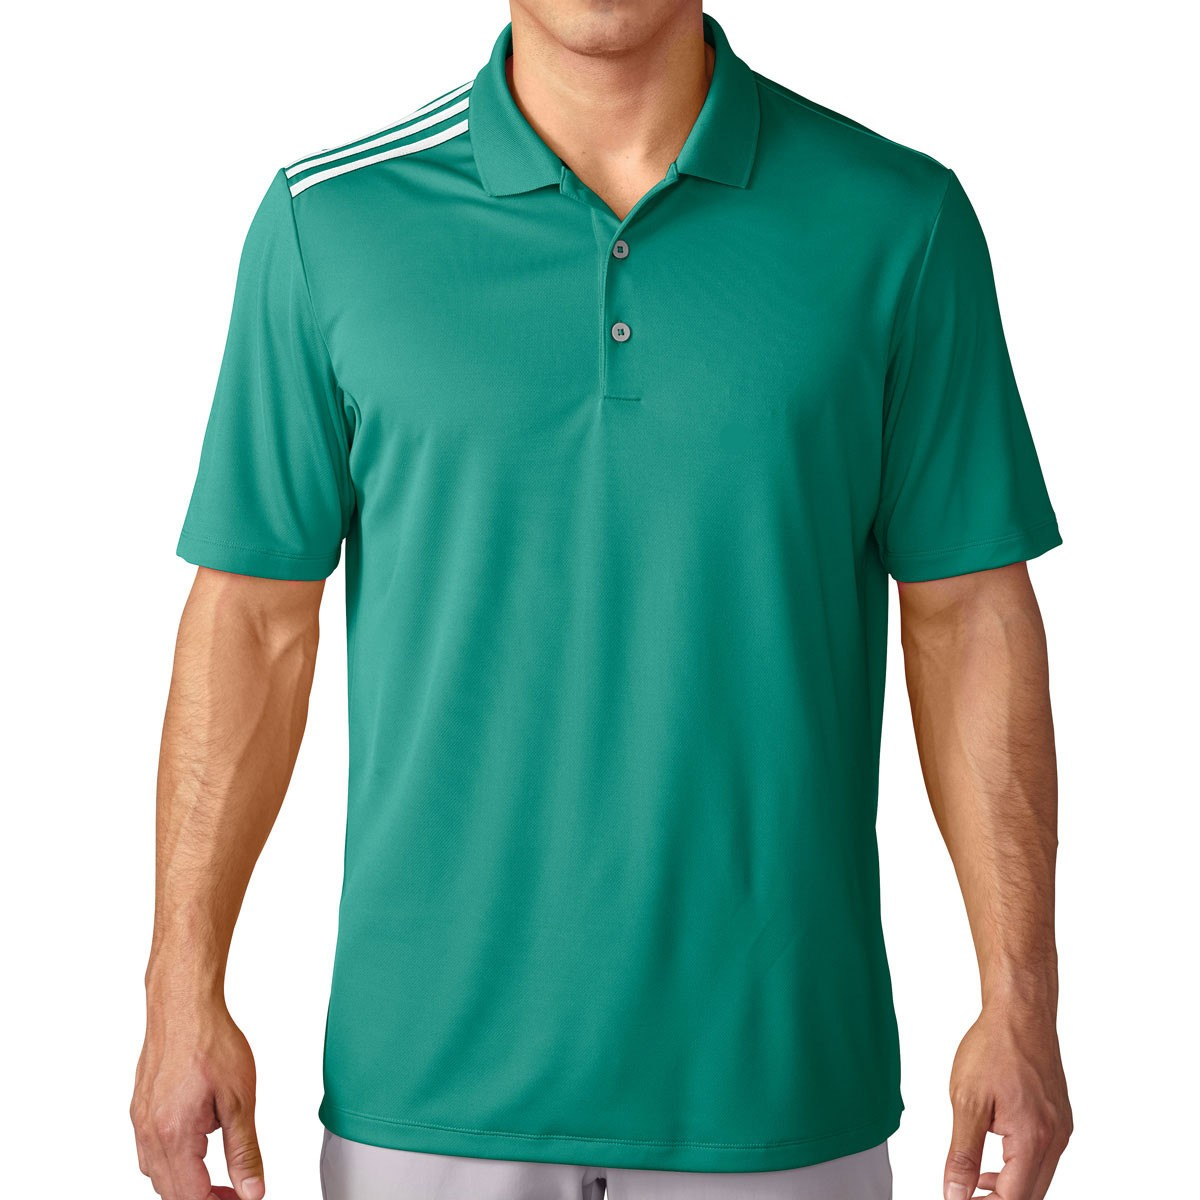 new product ac7d9 43cd0 Adidas Climacool Polo Shirt Mens